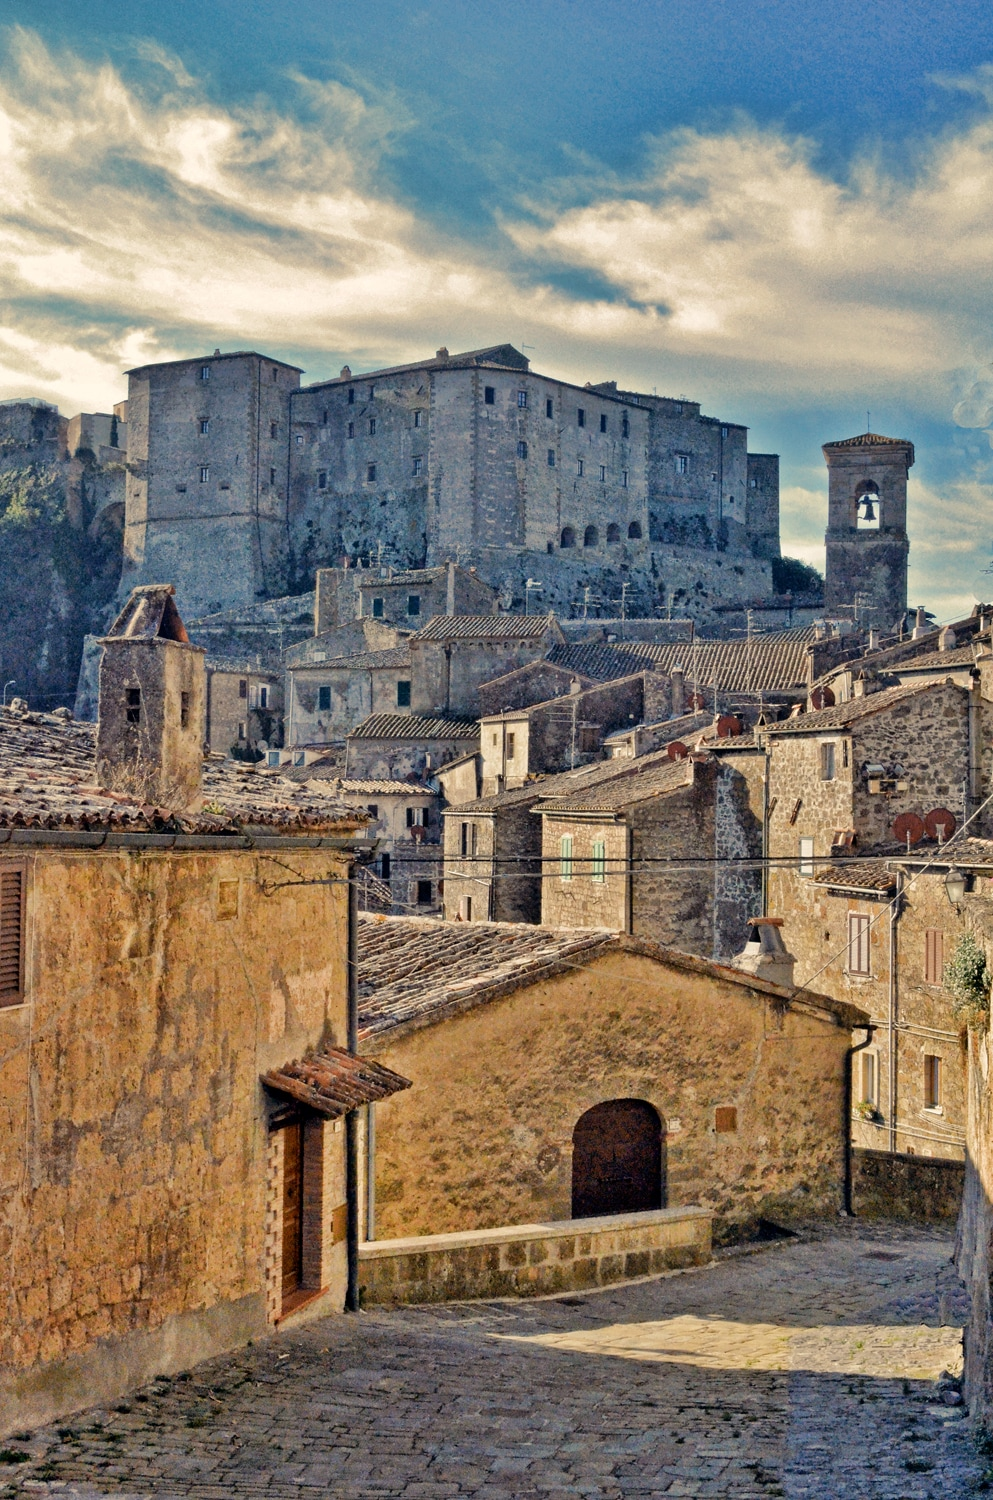 Sorano, old town